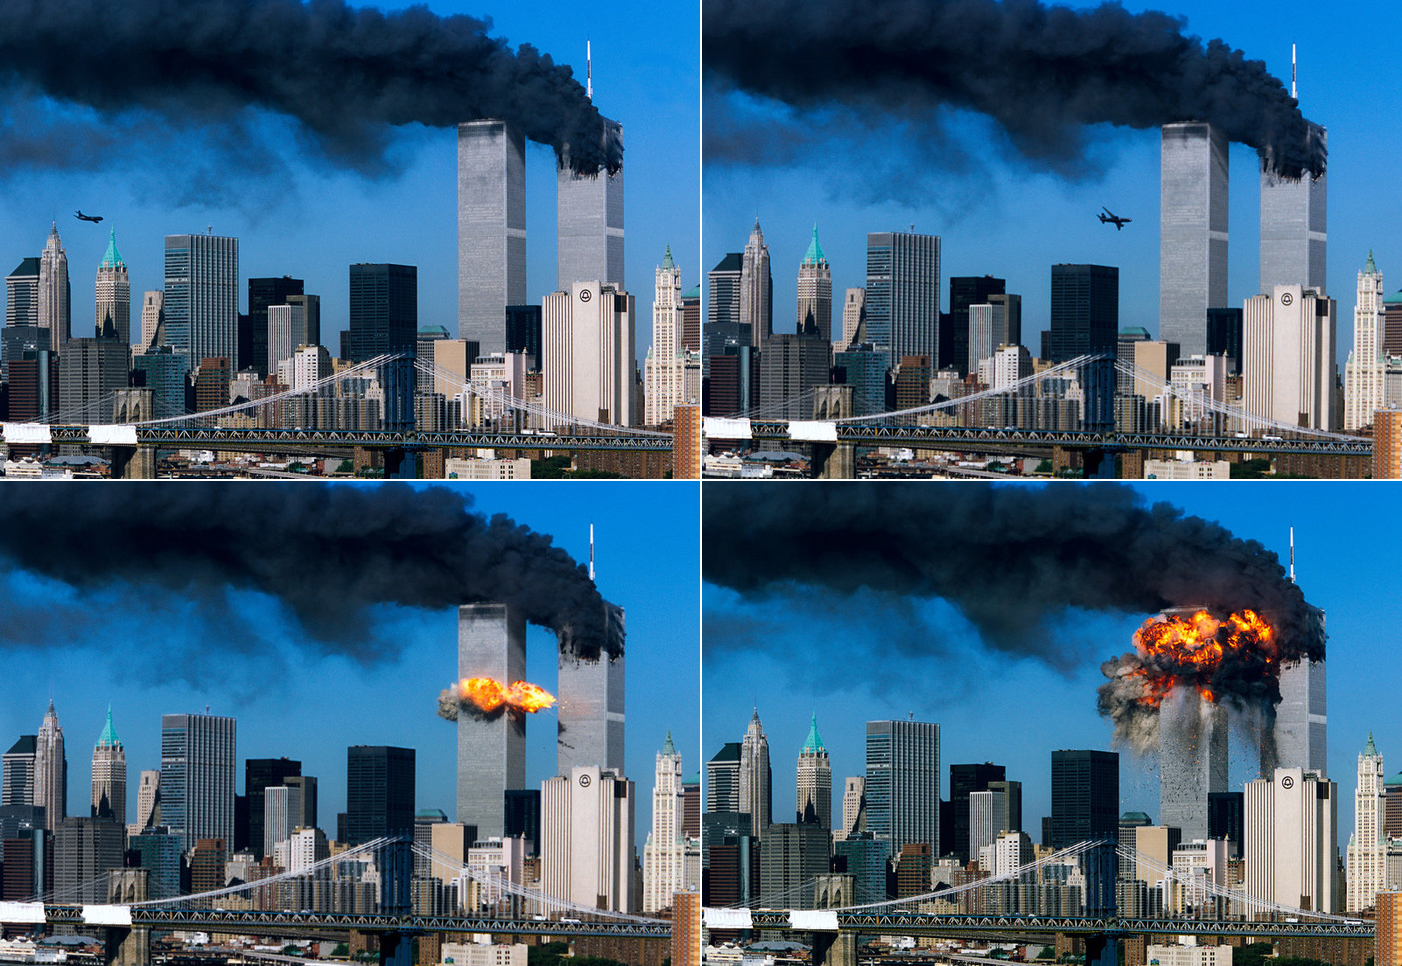 Second in a series of four. The second plane crashes into the World Trade Center.